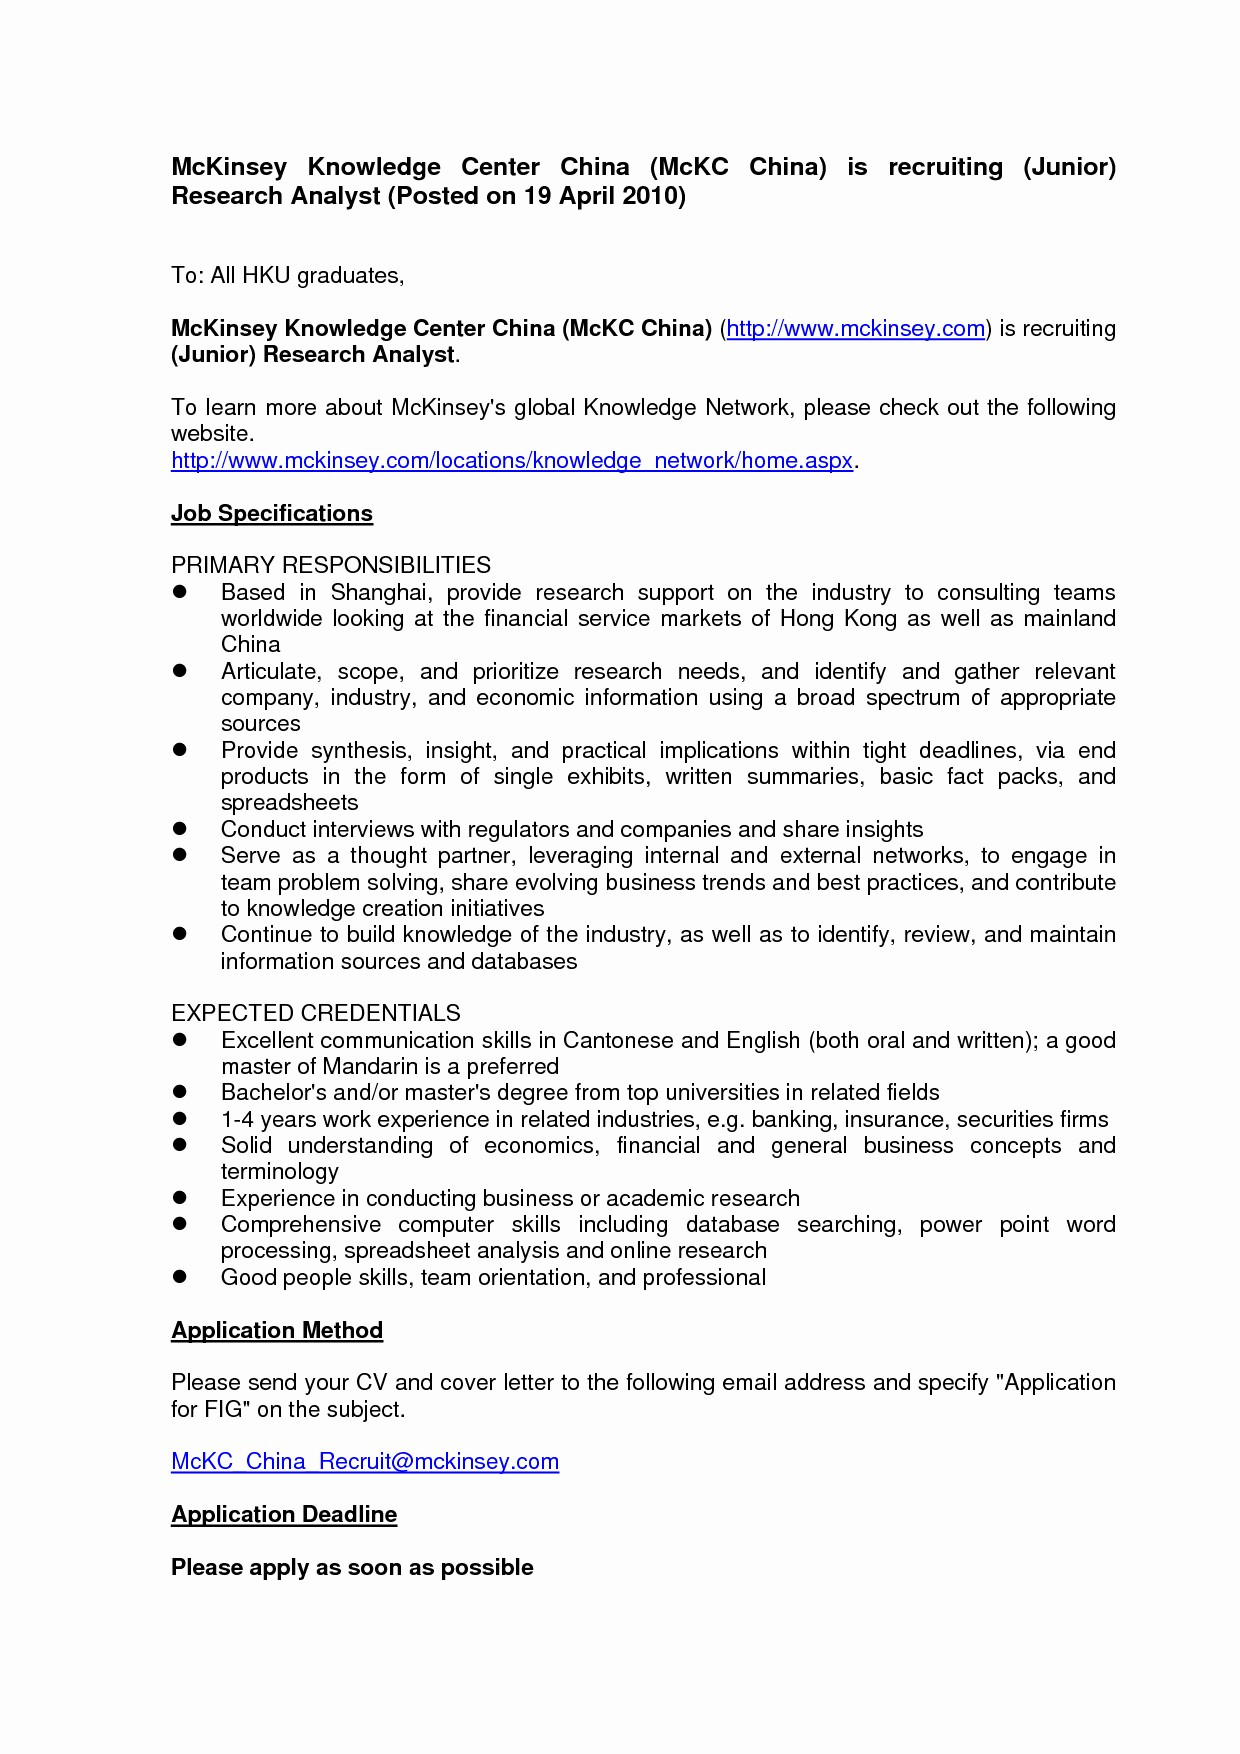 Easy Cover Letter Template - Inspirationa Simple Job Application Cover Letter